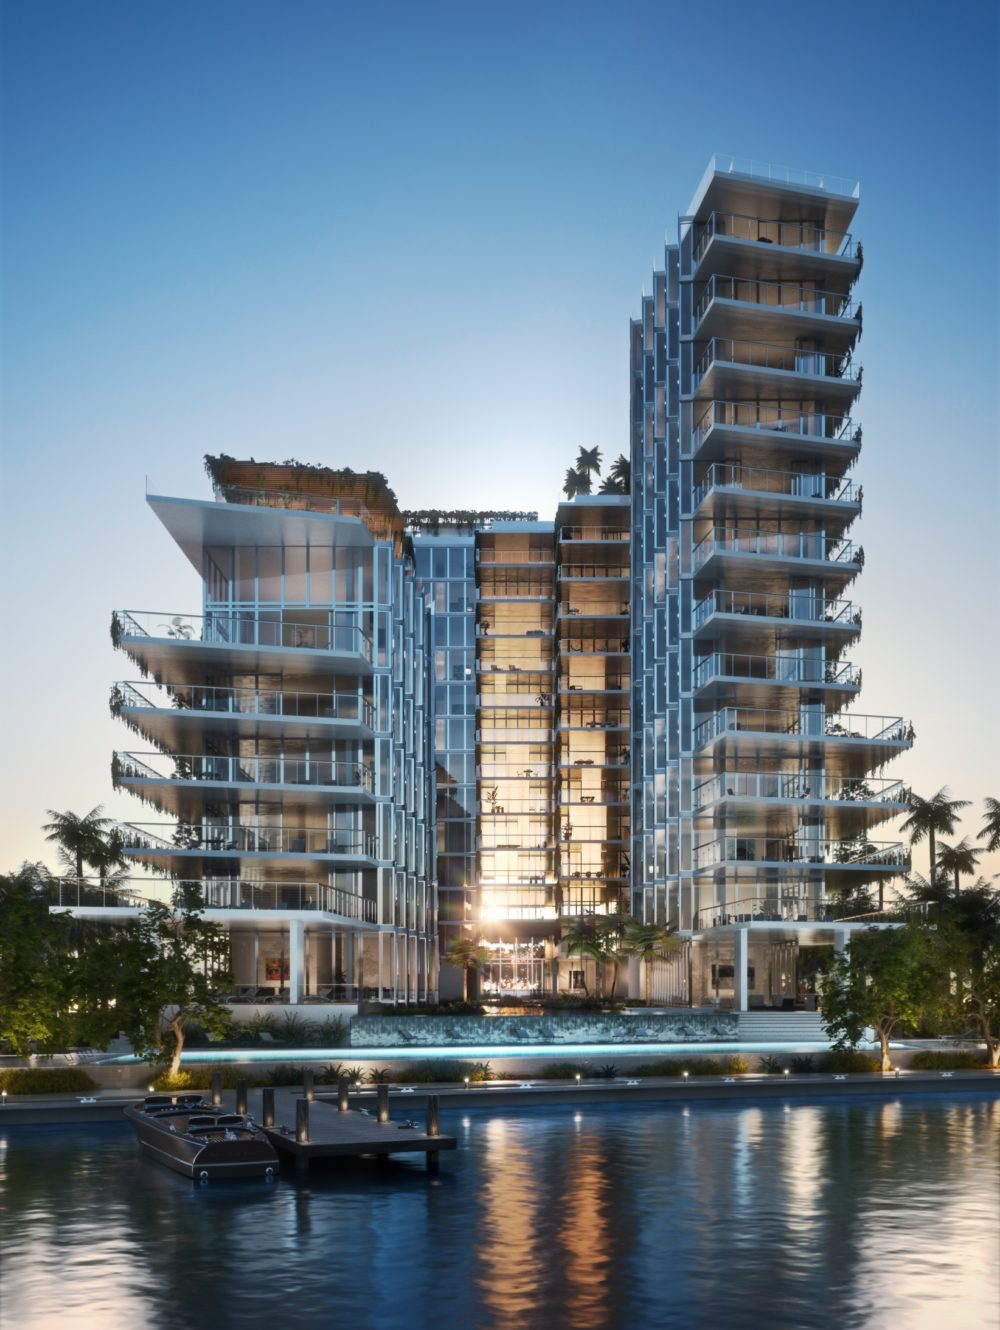 View of Monad Terrace taken from Biscayne Bay in Miami. Condo building next to the water with glass walls reflecting the sun.